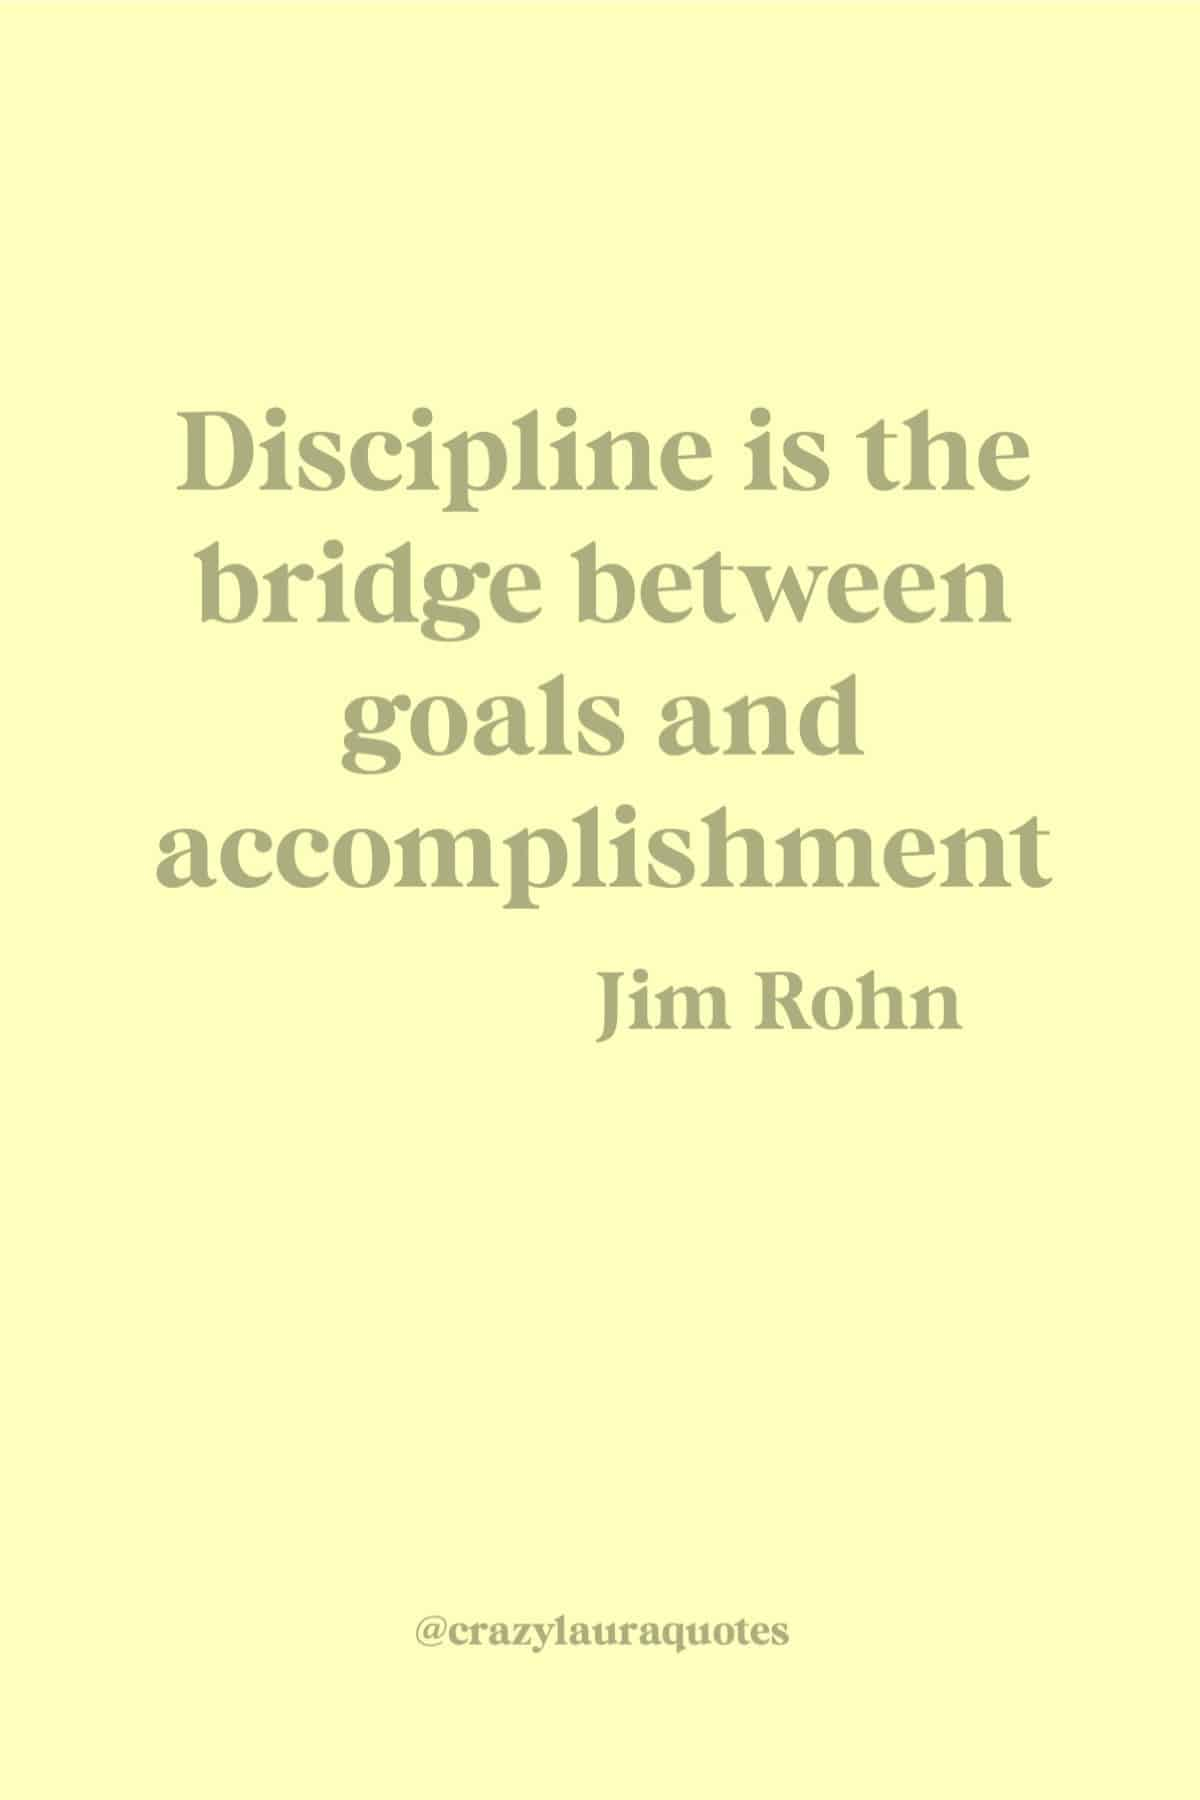 fitness discipline quote by jim rohn